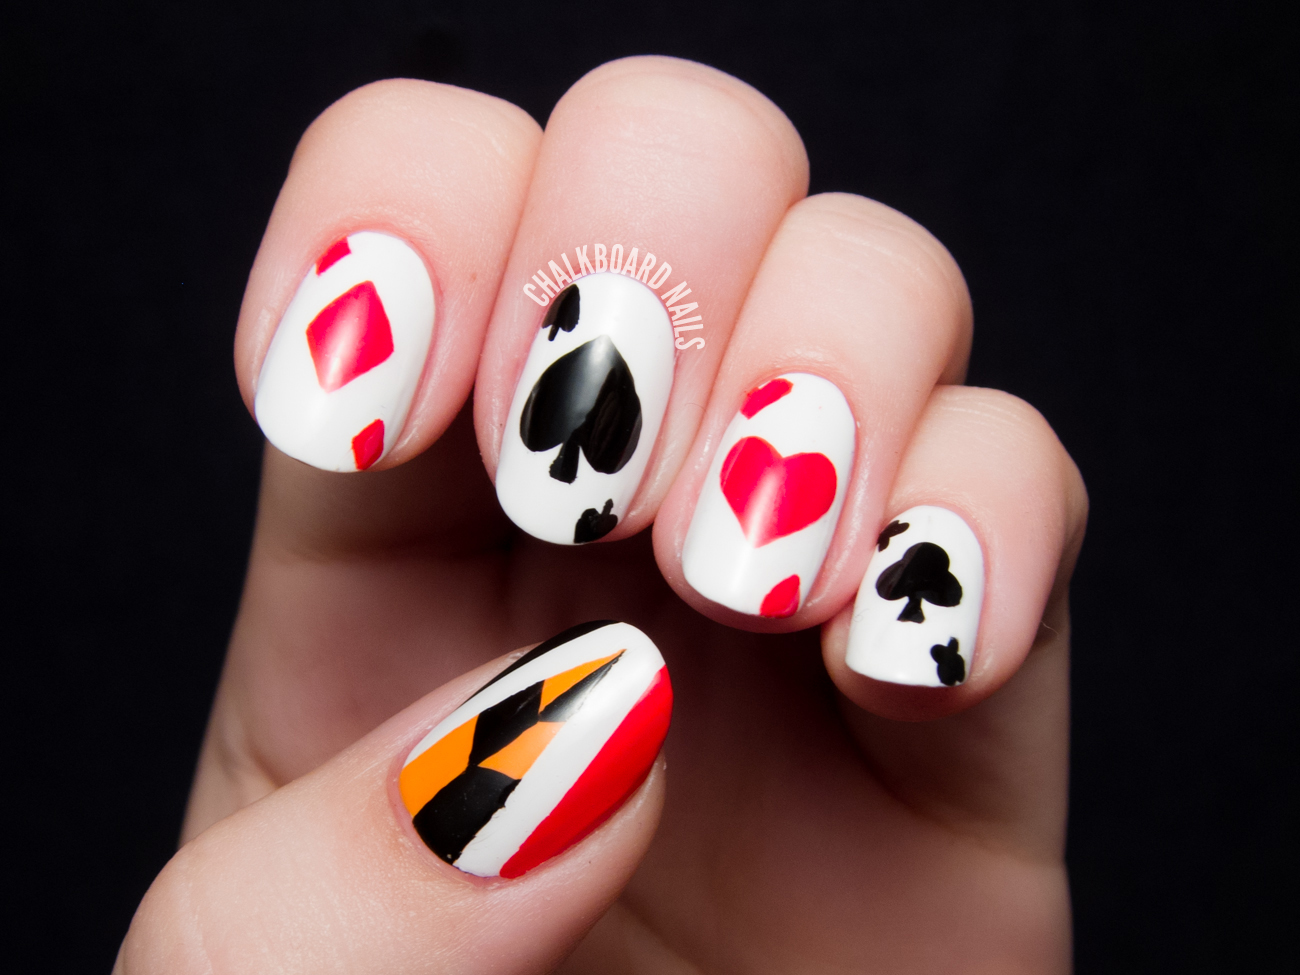 Awesome nail art games cool gaming nail art ideas for fans awesome nail art games planetzuri prinsesfo Gallery